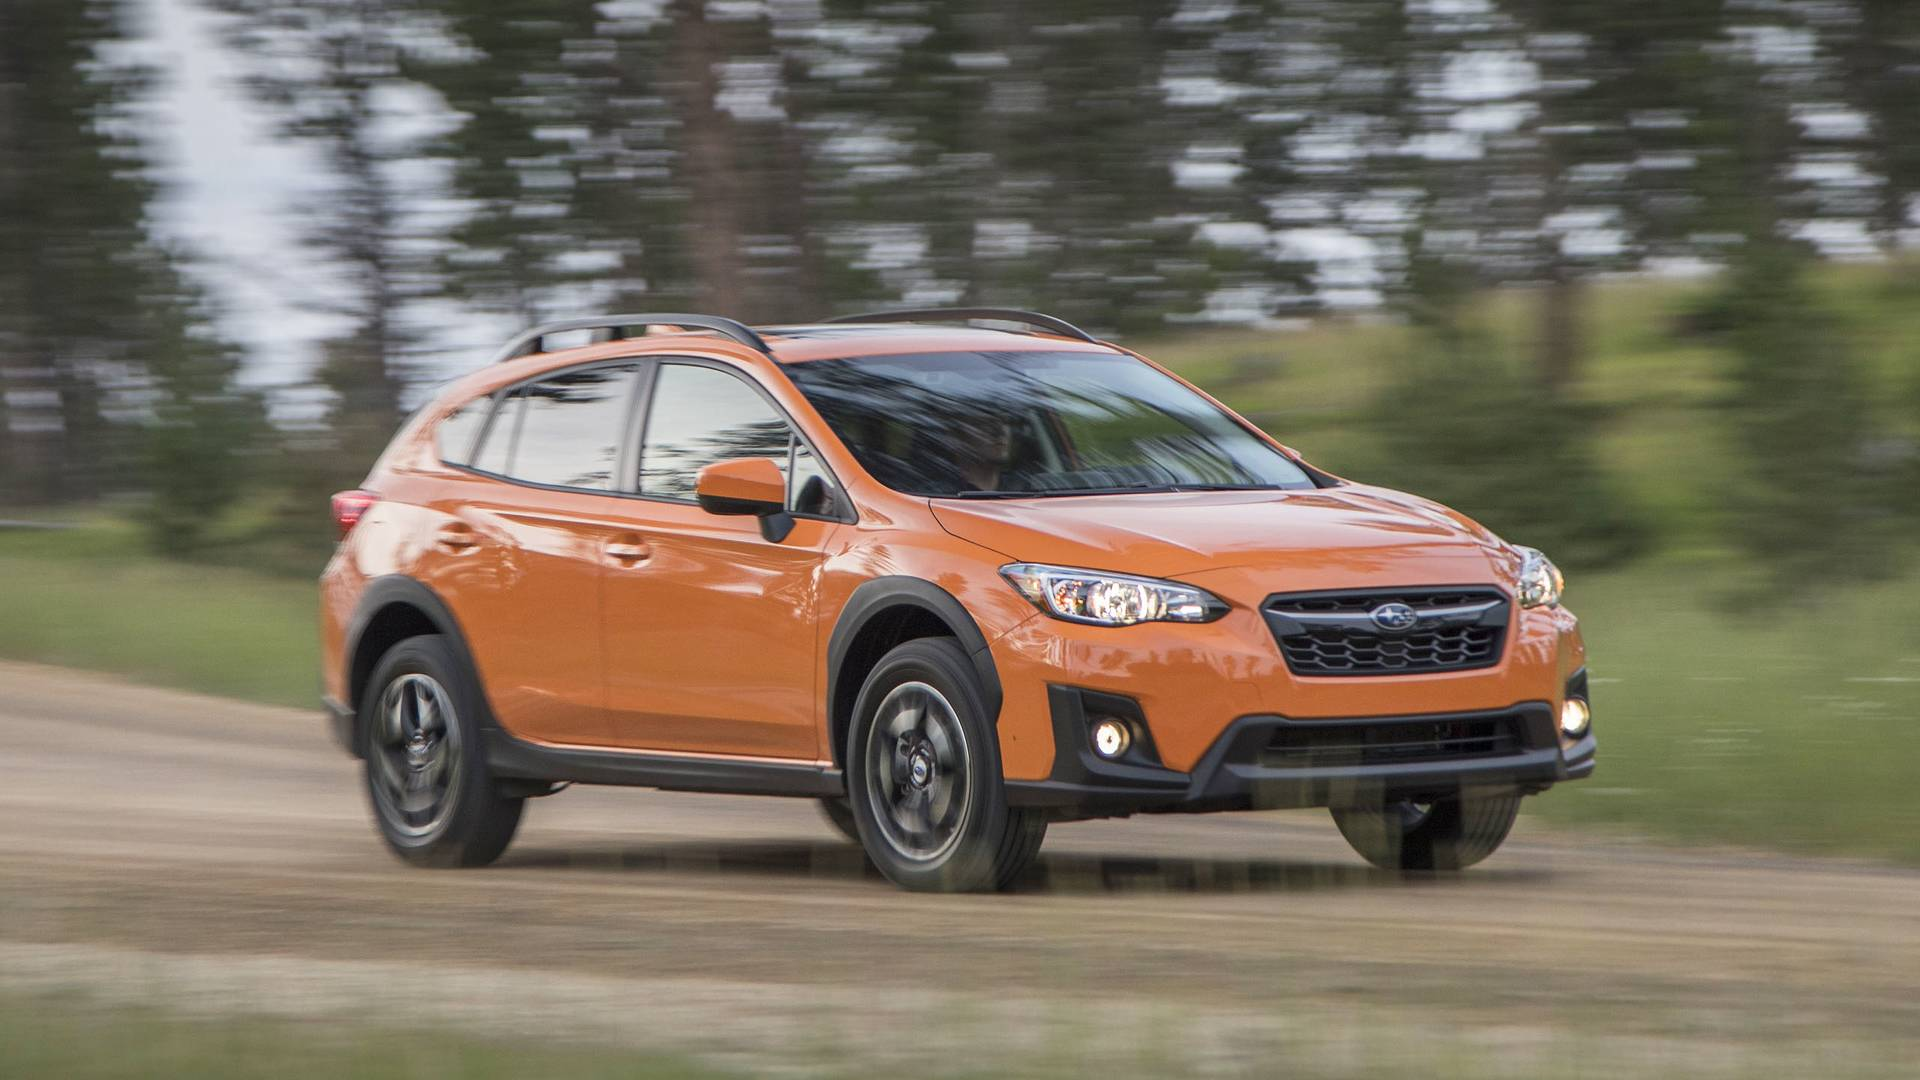 2021 Subaru Crosstrek Coming With More Powerful Engine